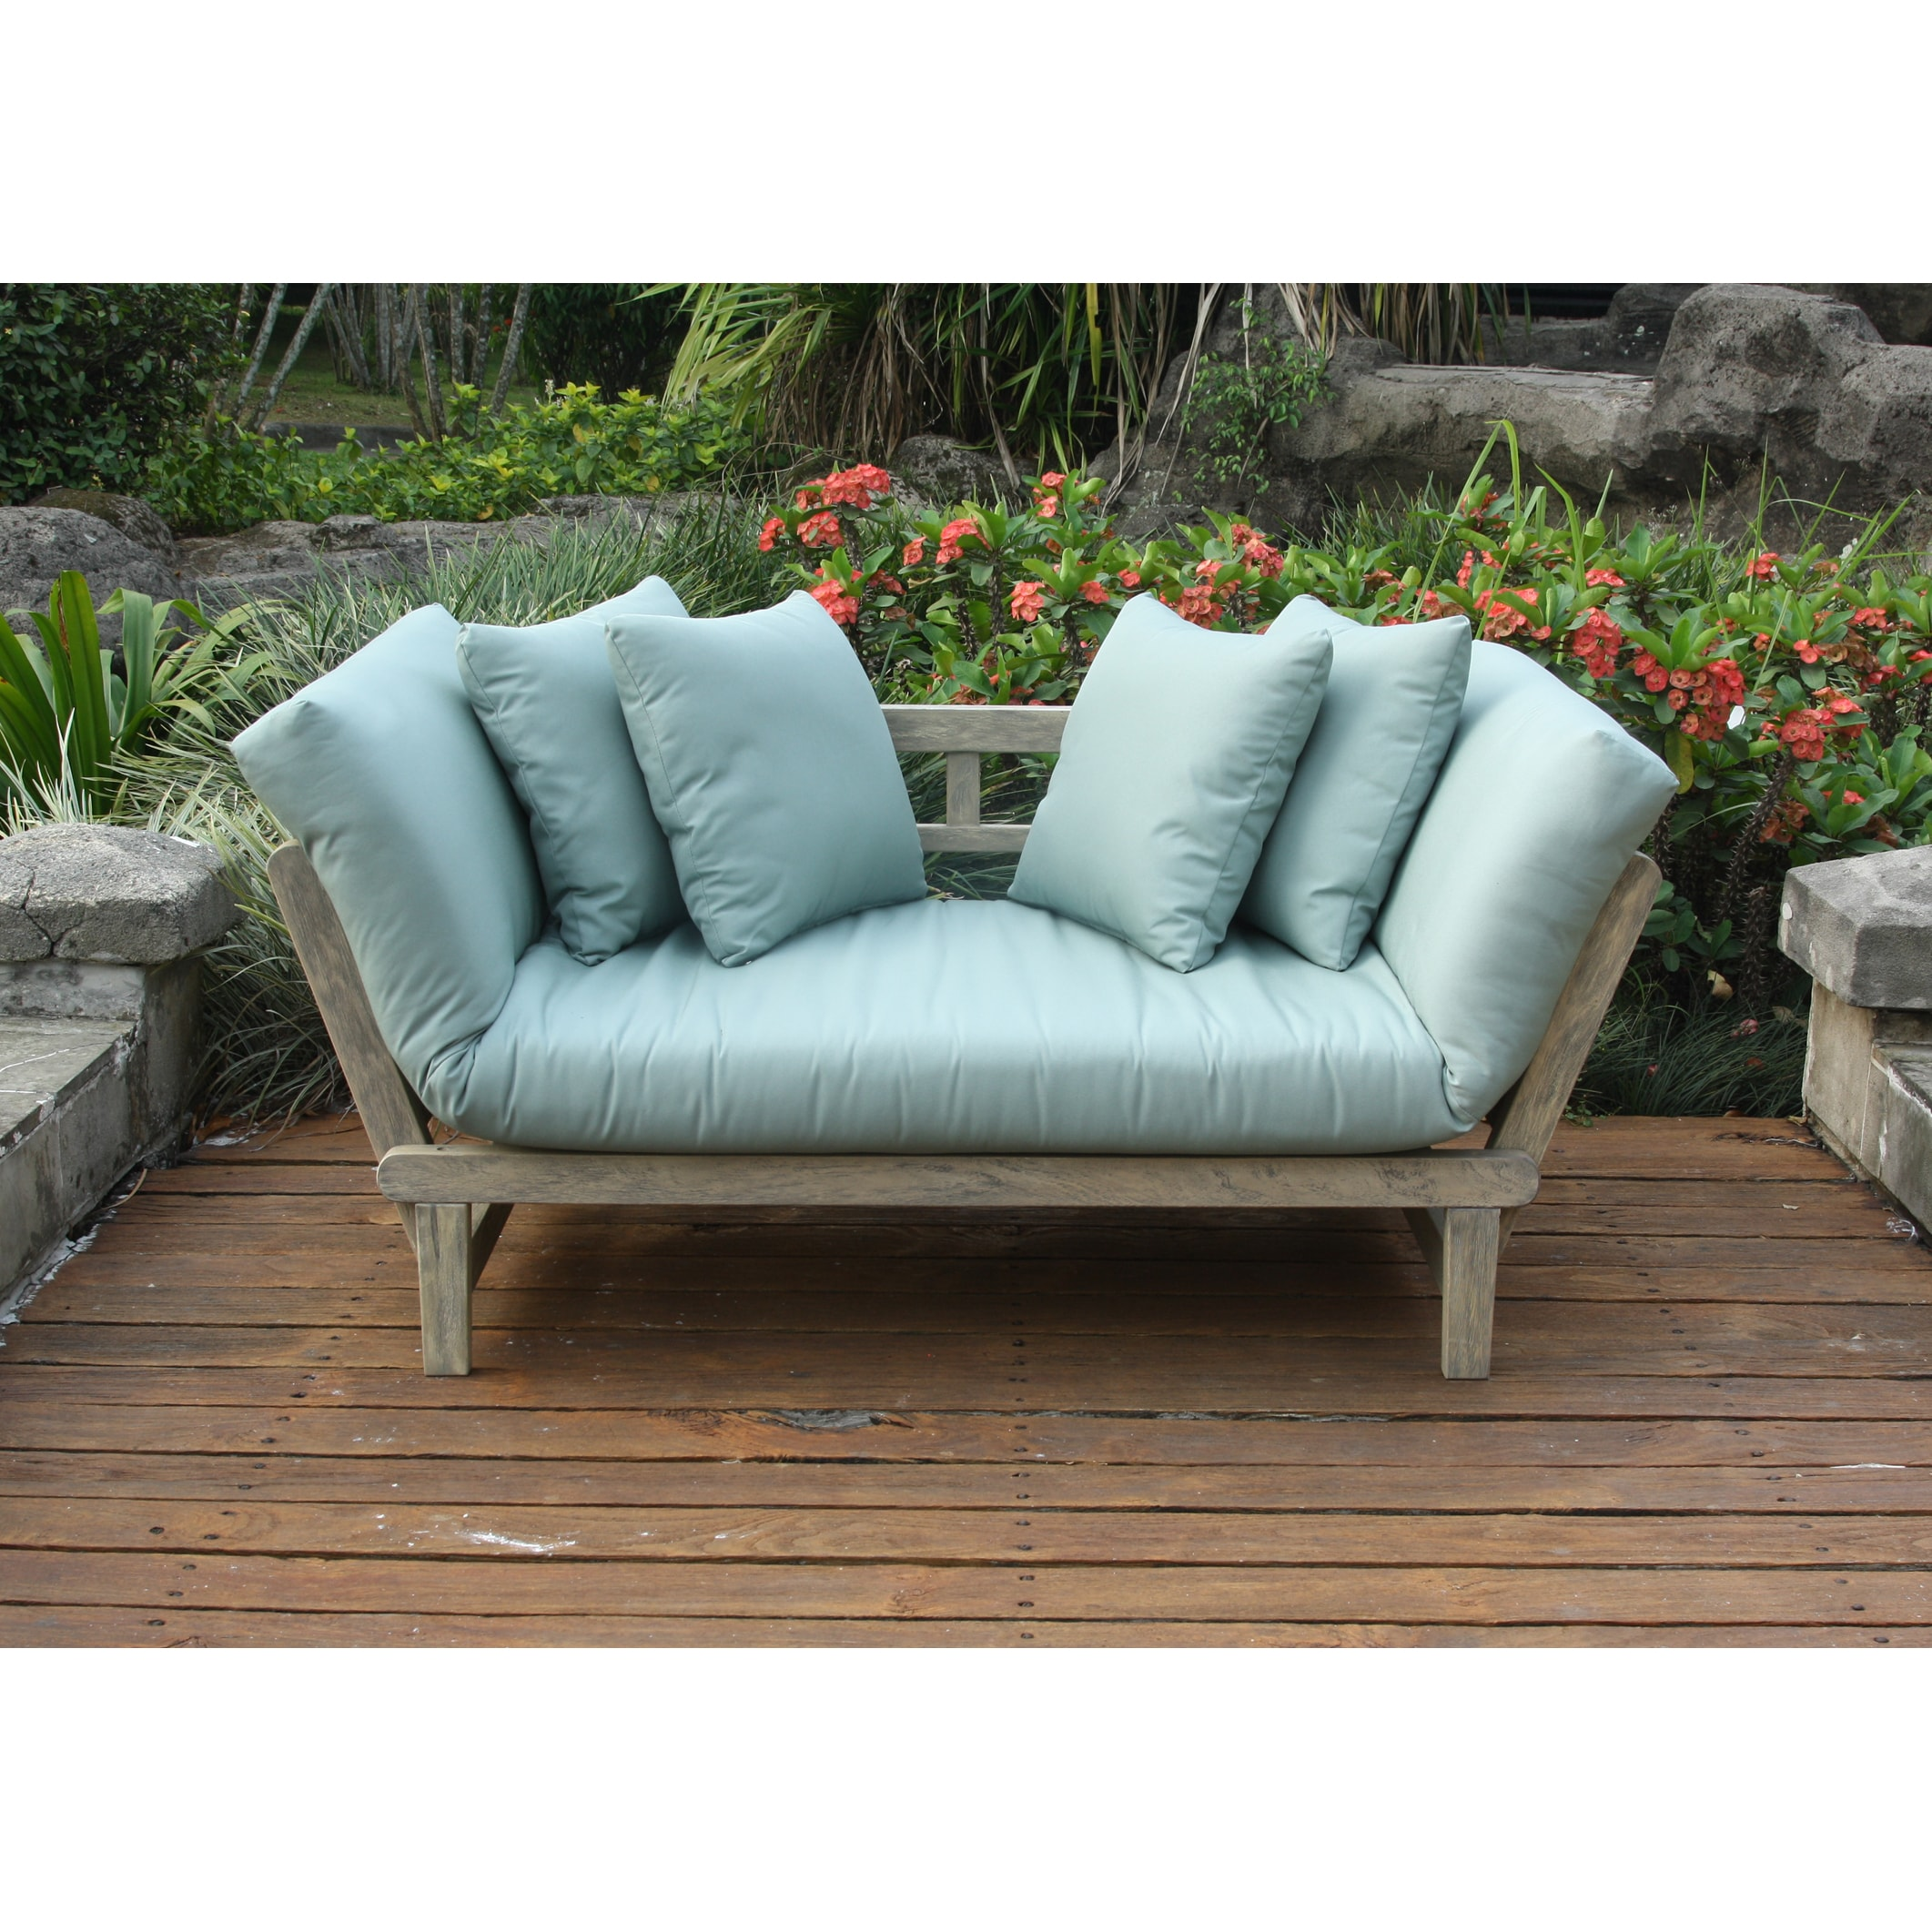 nsyd heated the popular of well daybed patio first unbelievable pict amazing furniture dog and bed day trend outdoor bali balinese